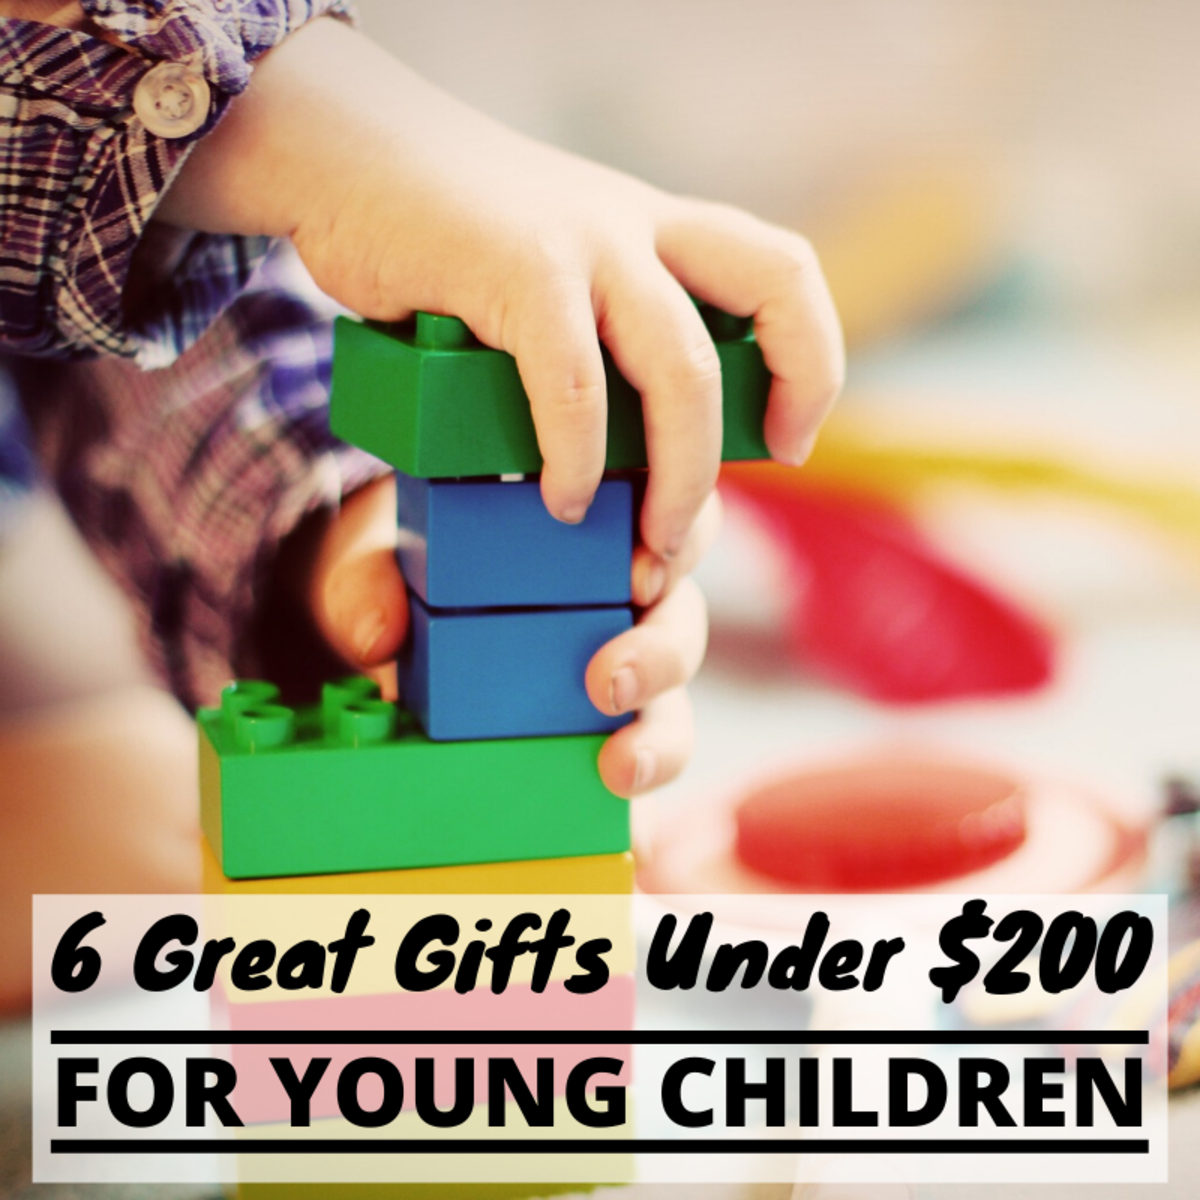 These six gifts may be pricier than some, but they're also larger, higher-quality, and more durable. In our experience, toys like these promote more educational and engaging play.